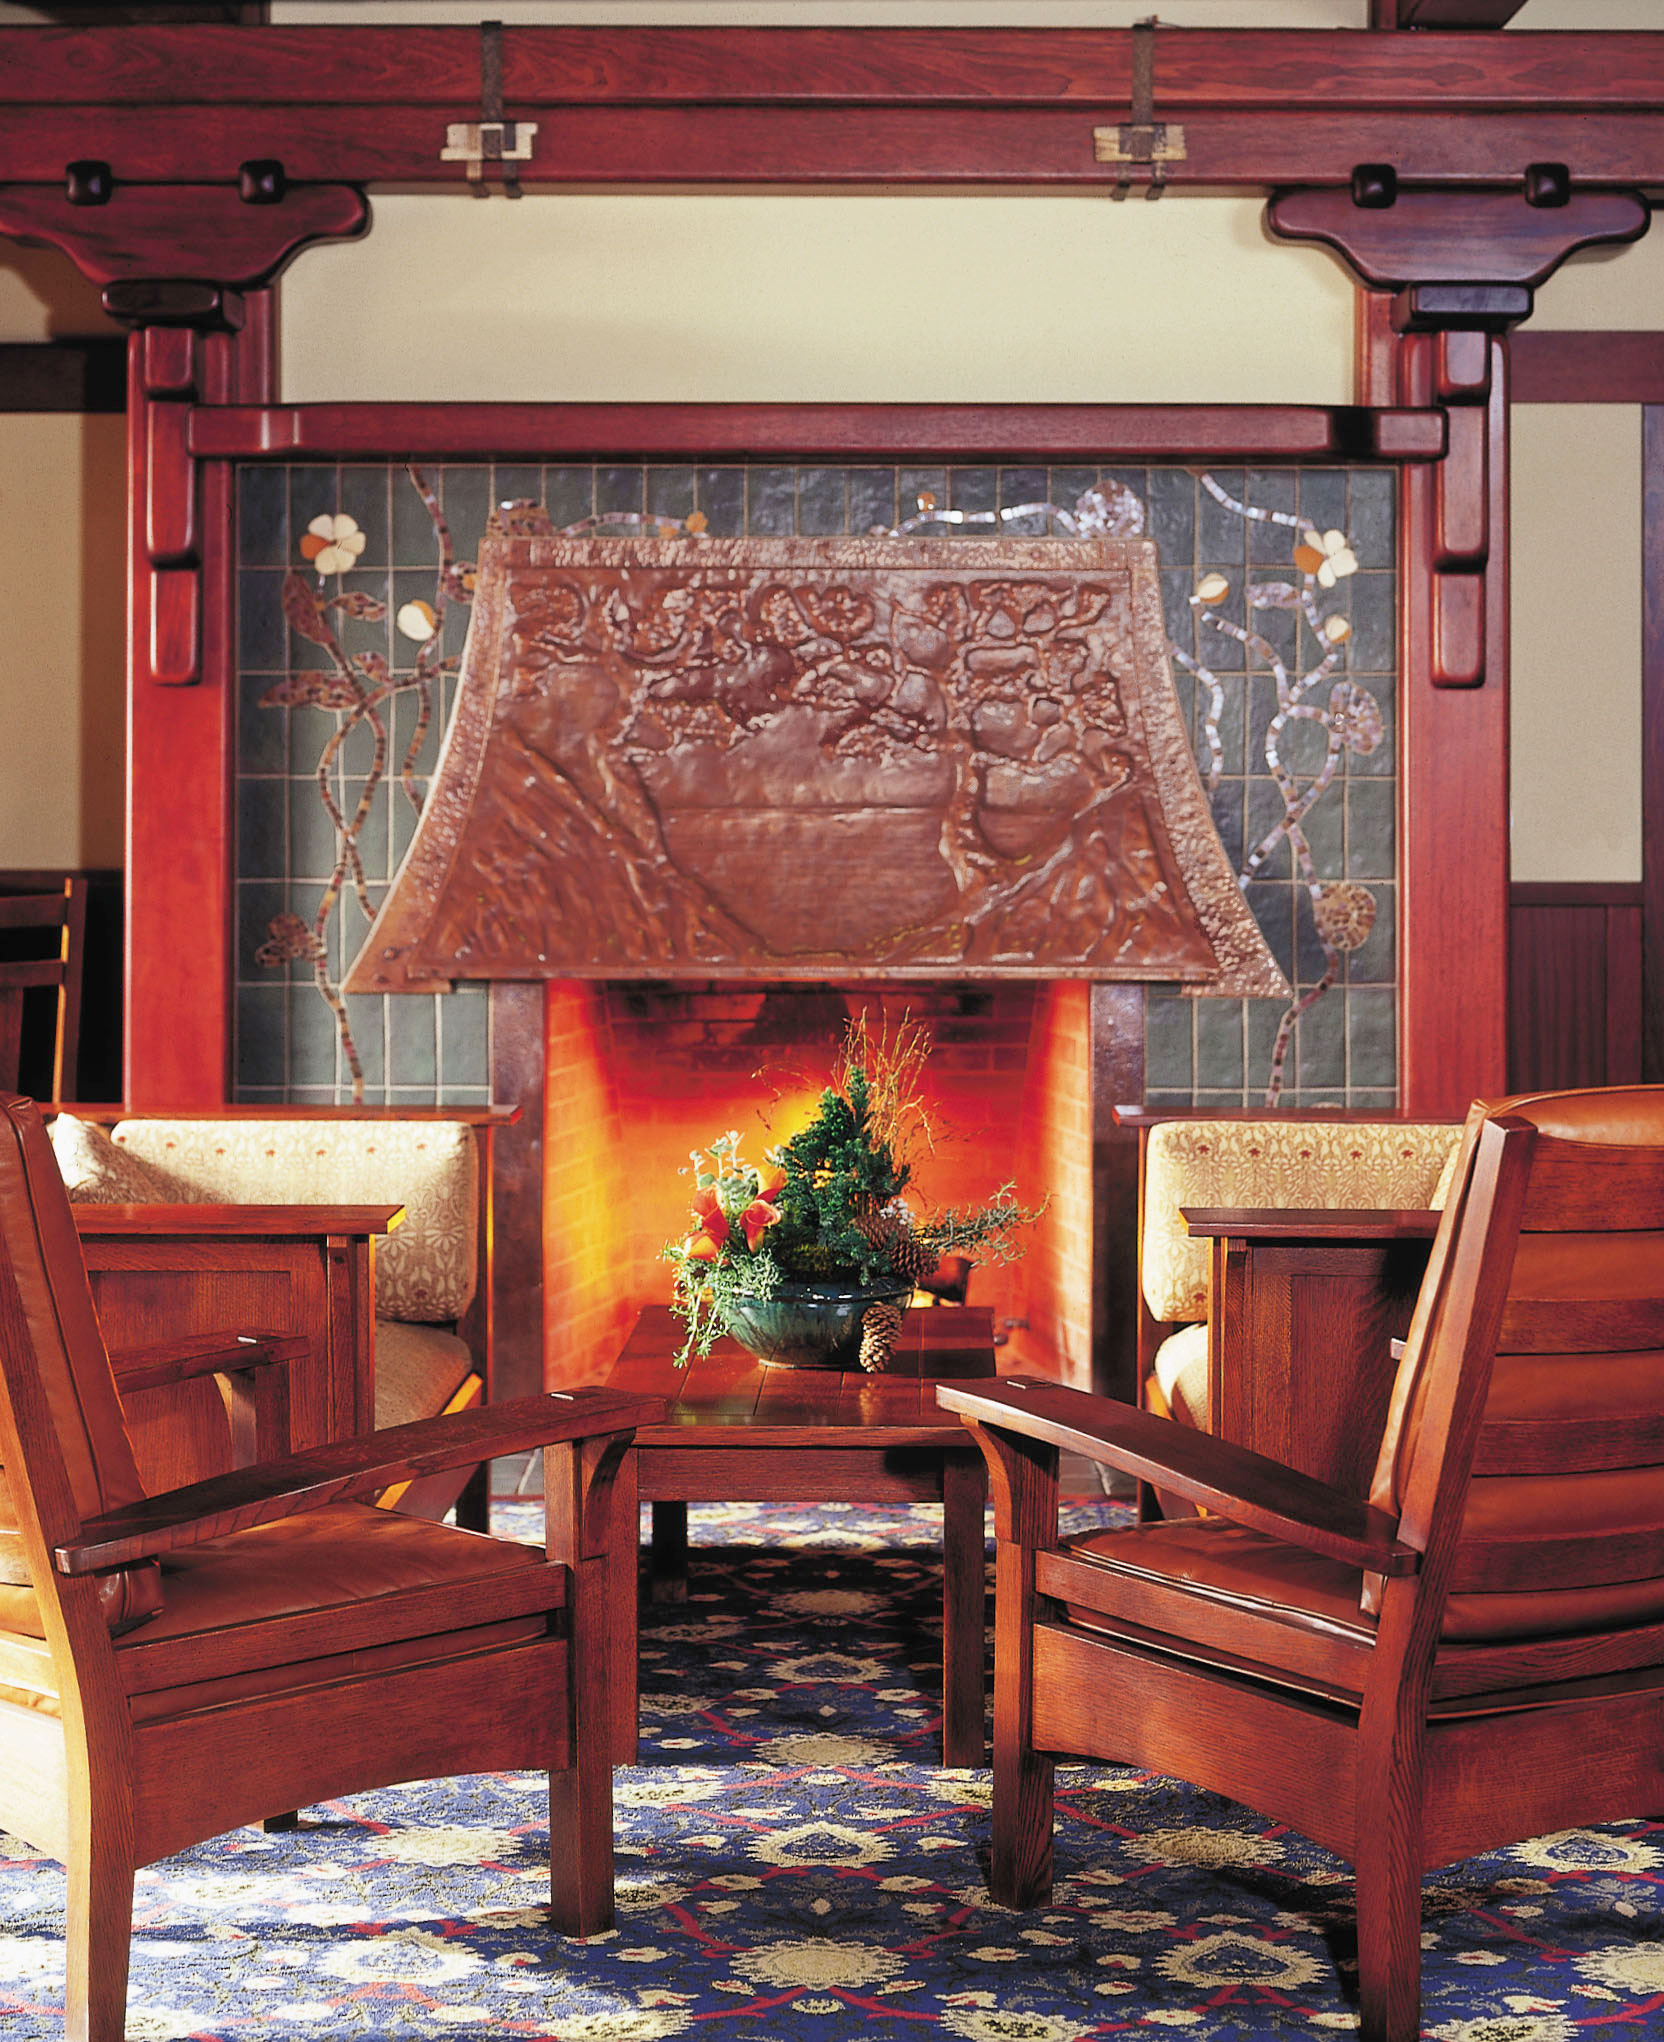 LTP-ARV_Bar-Fireplace.jpg